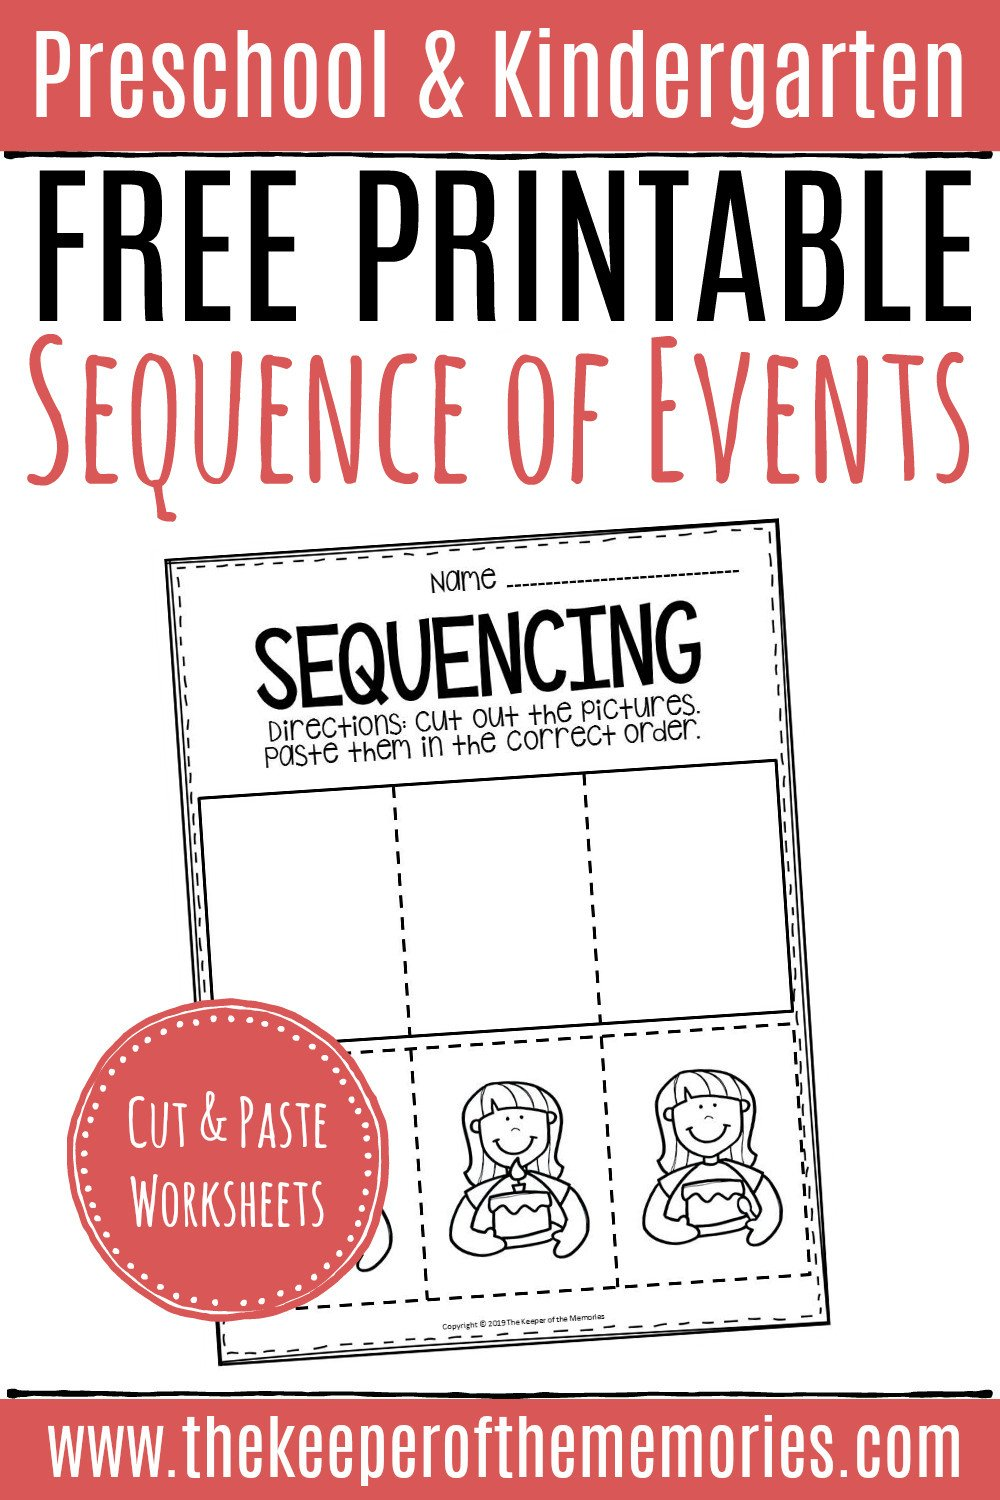 Free Printable Sequence of Events Cut Paste Worksheets